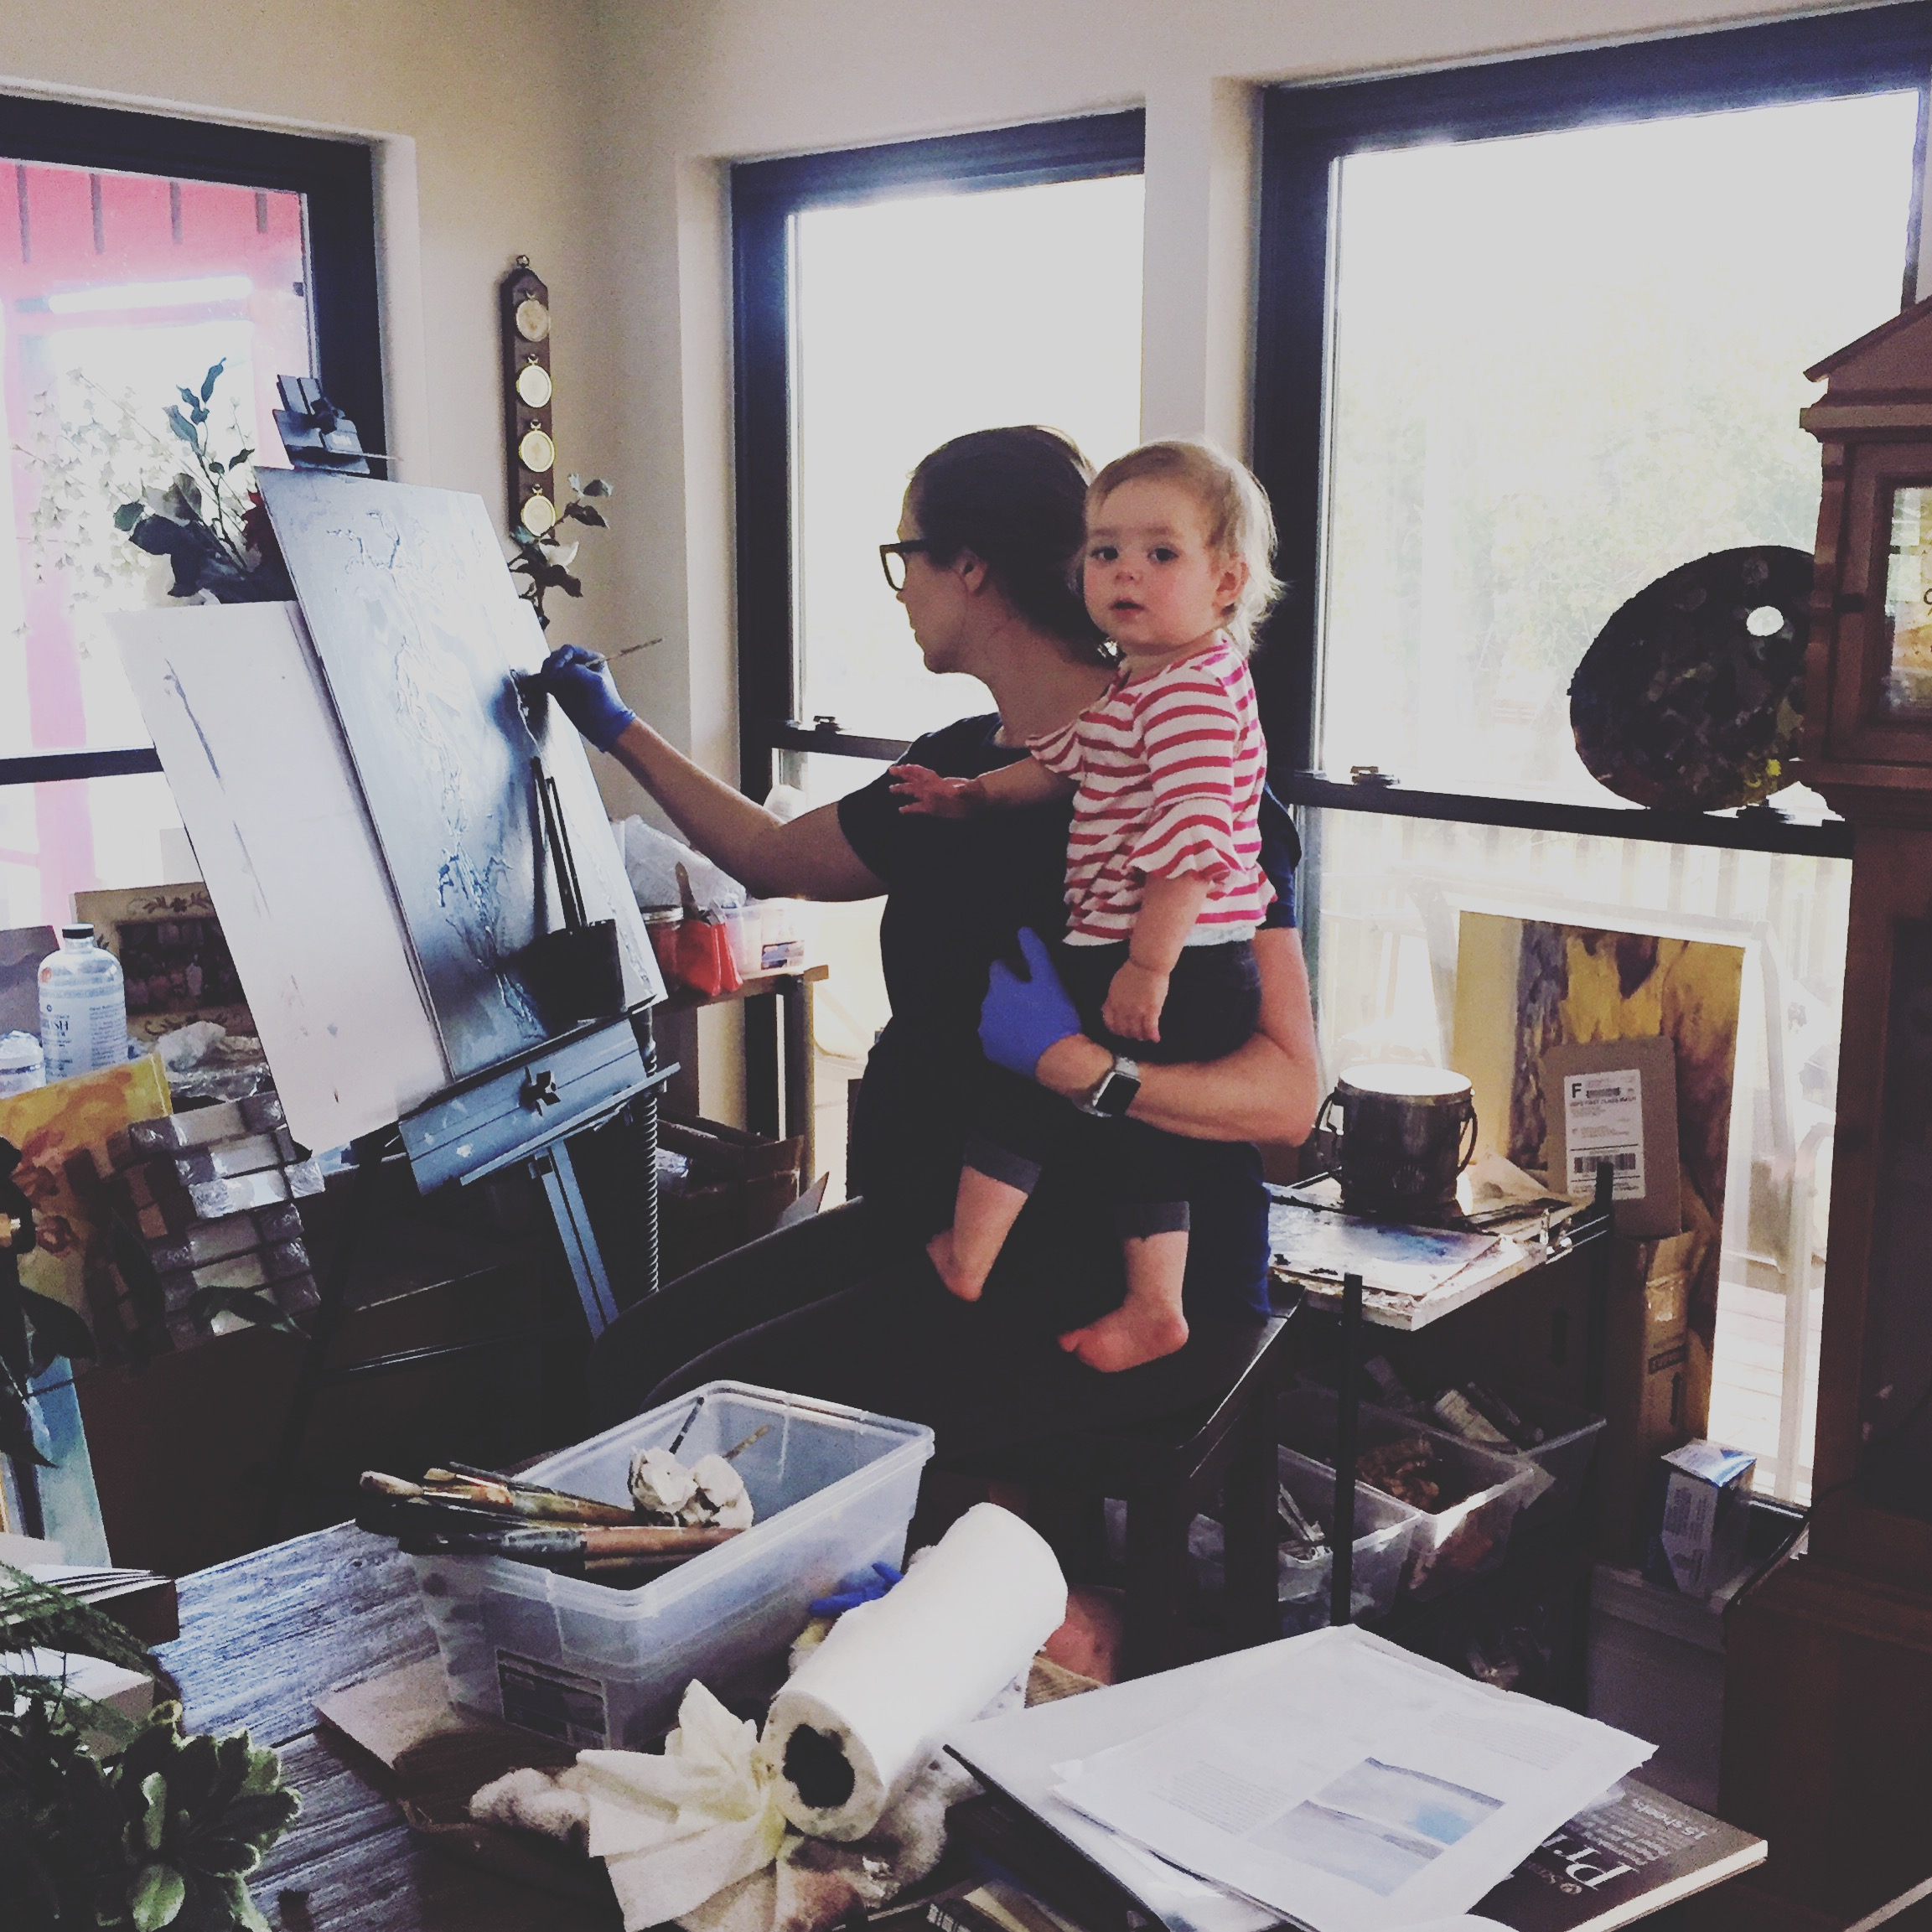 """Once construction really got going, I moved my """"studio"""" back upstairs to our dining room, which is where I finished the  Twisted Compass collection . Believe it or not, I actually really enjoyed painting right in the middle of life (Just not the mess it made). 30 weeks pregnant, working on """" Rivers ,"""" my daughter is helping."""